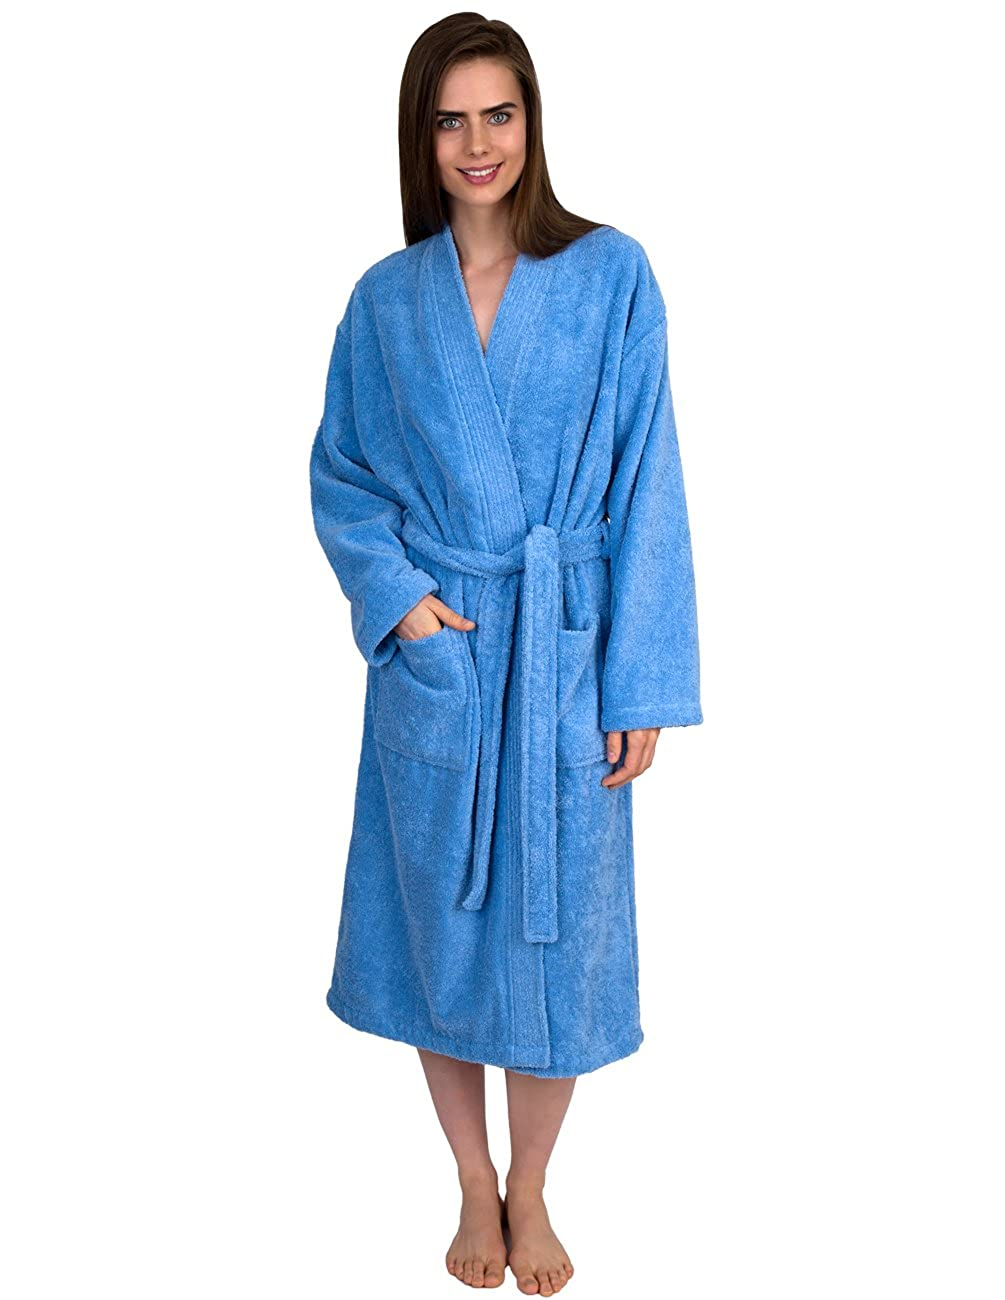 e671daec39 TowelSelections Women s Robe Organic Cotton Terry Kimono Bathrobe Made in  Turkey at Amazon Women s Clothing store